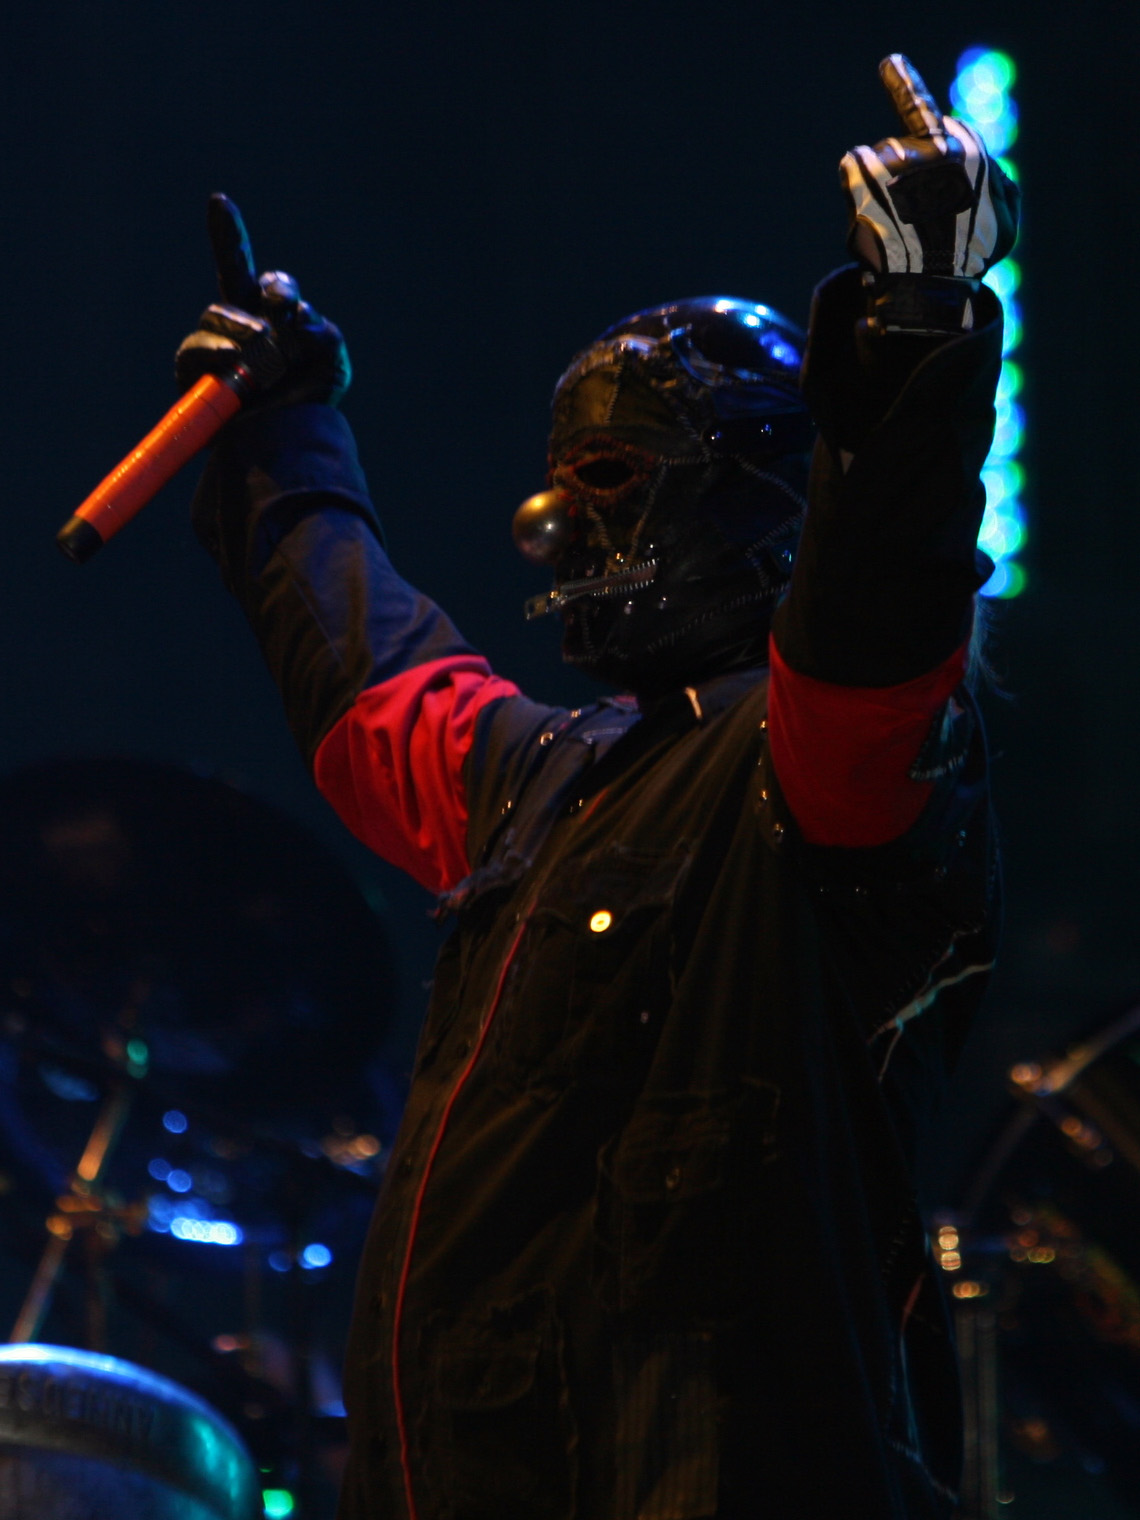 Shawn Crahan Age Shawn Crahan at Mayhem Fest 2